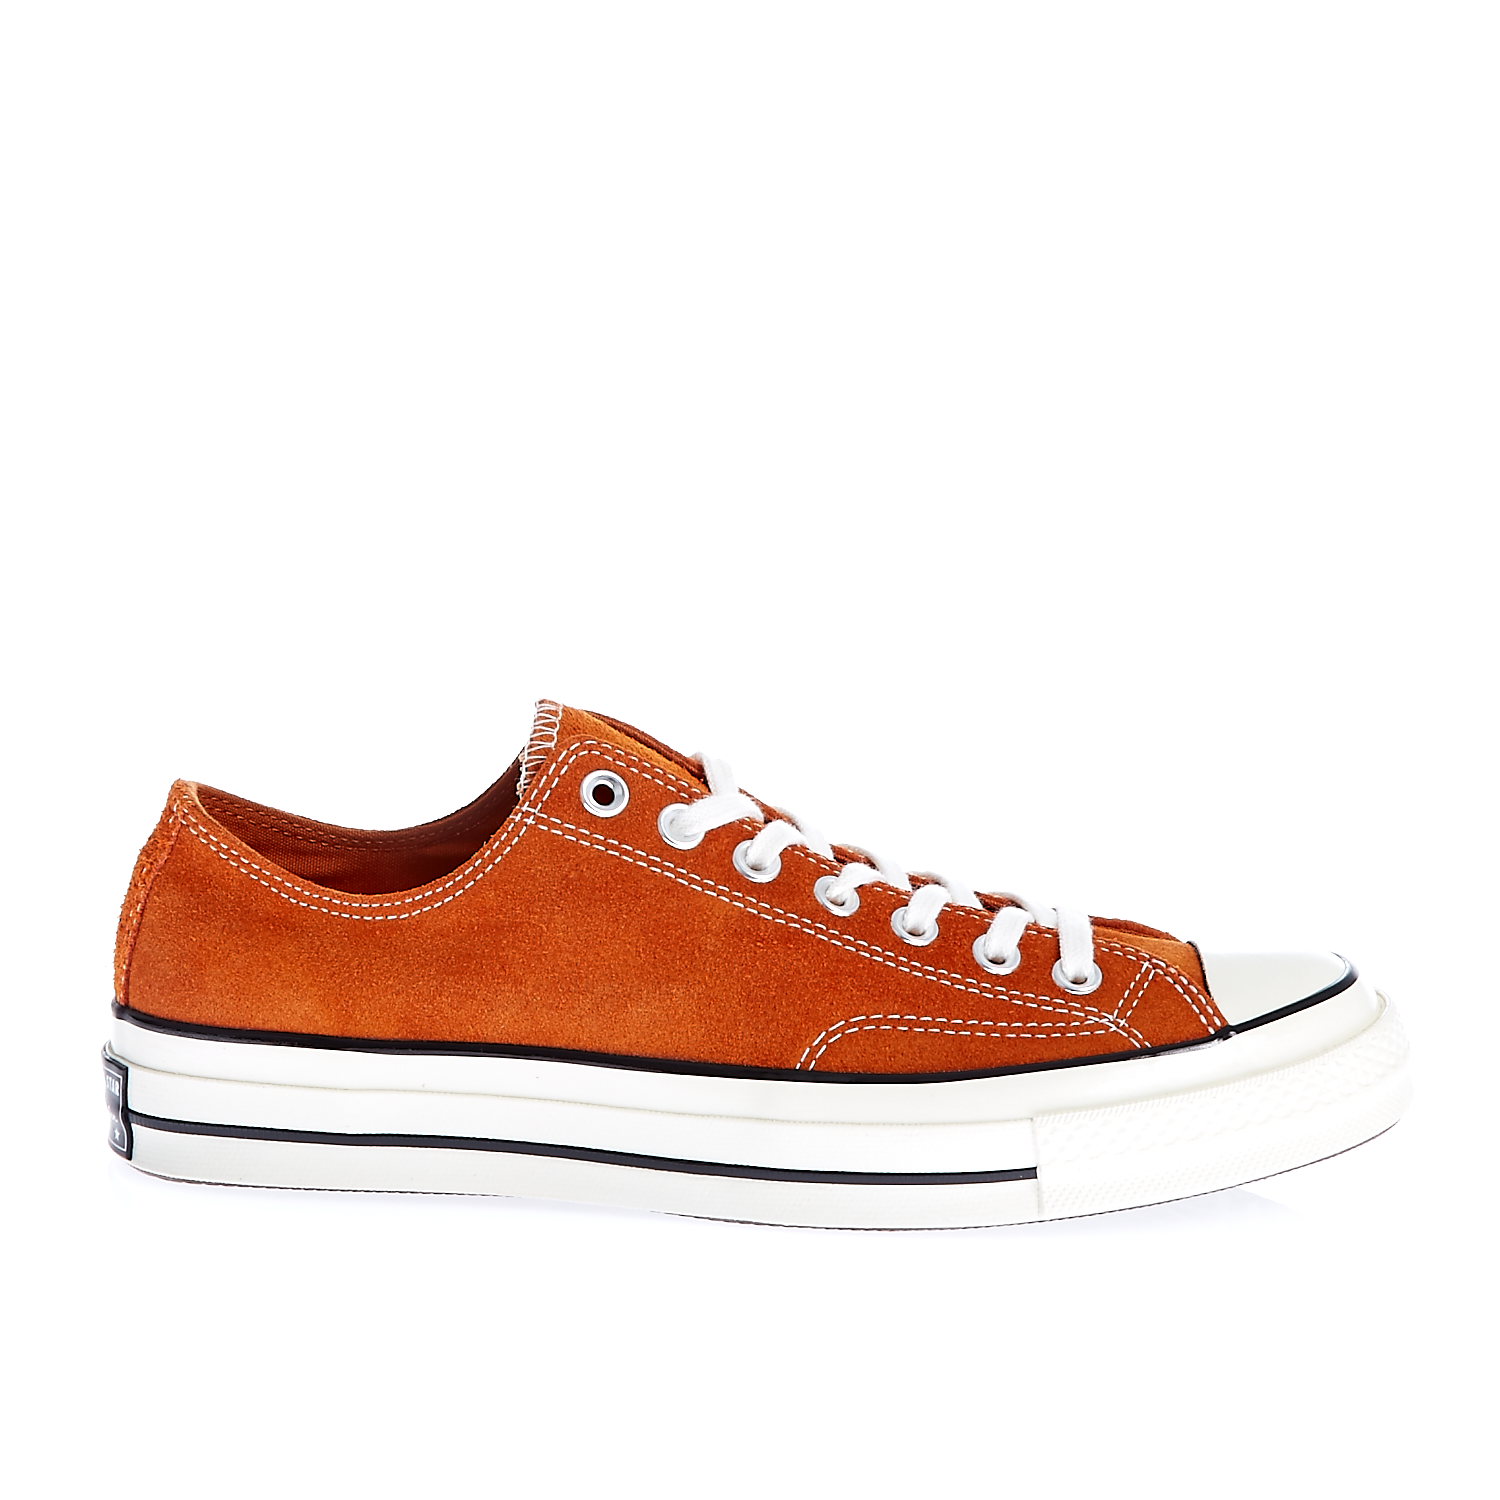 CONVERSE - Unisex παπούτσια Chuck Taylor All Star '70 Ox πορτοκαλί